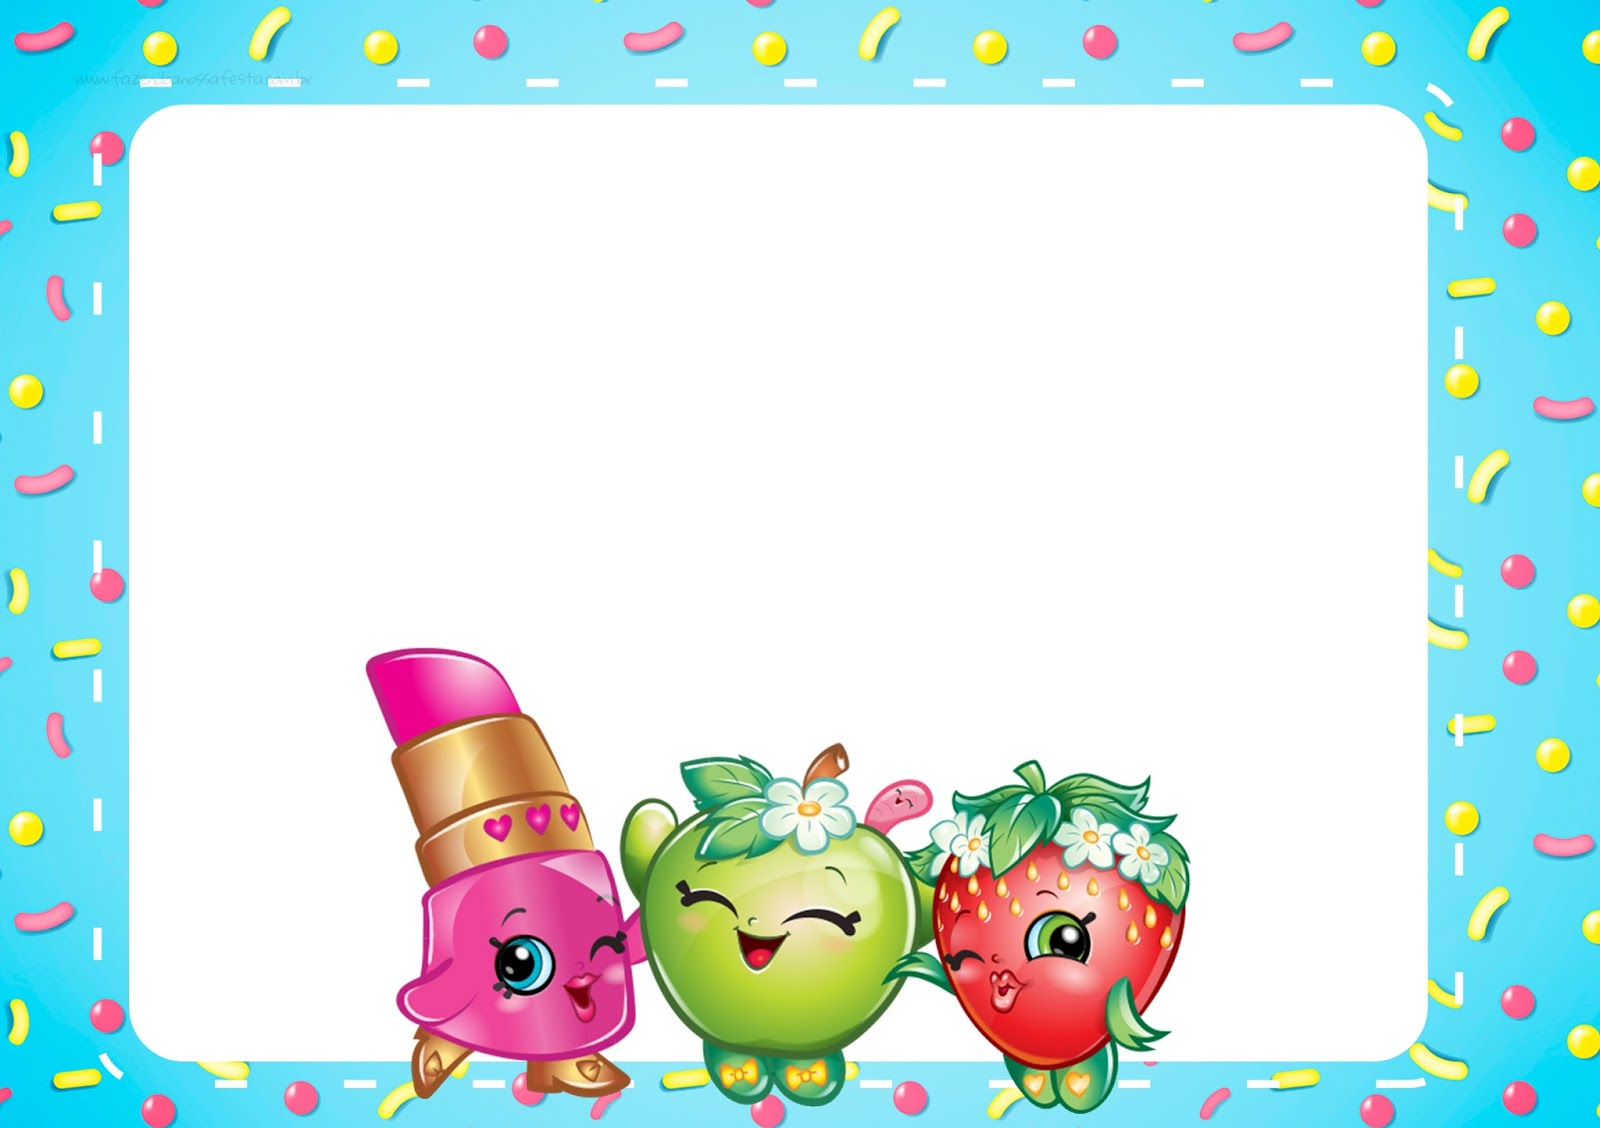 It's just an image of Fan Shopkins Printable Invitations